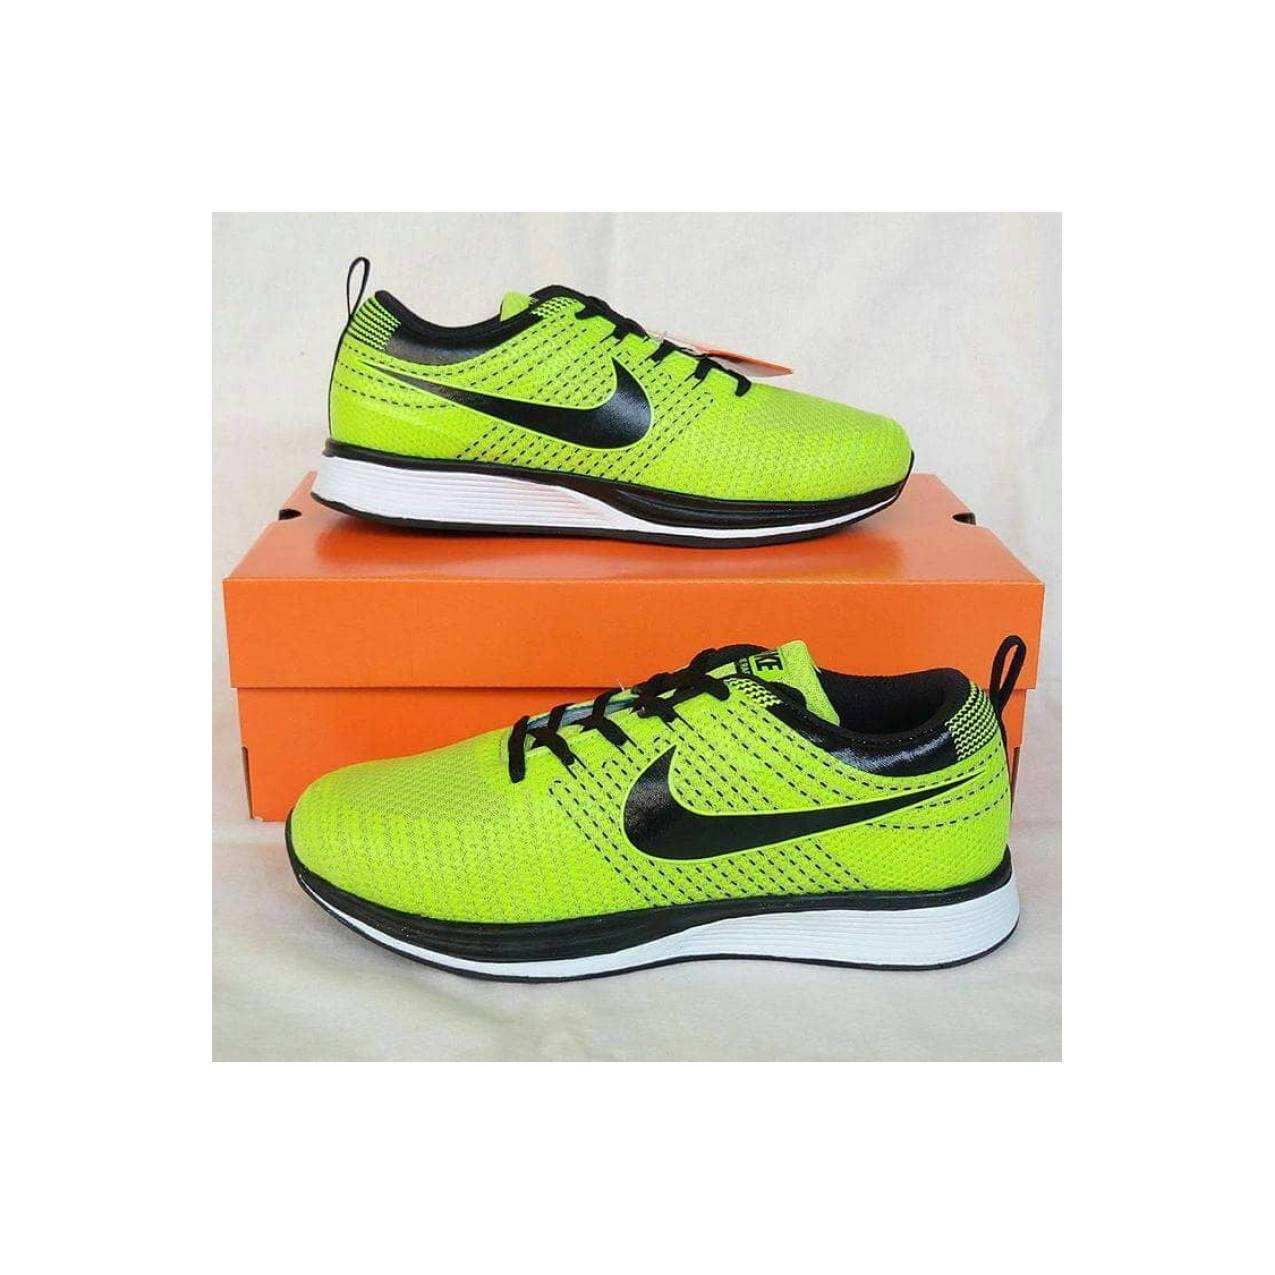 Sepatu Nike Run Flyknit Racer Woman lime black